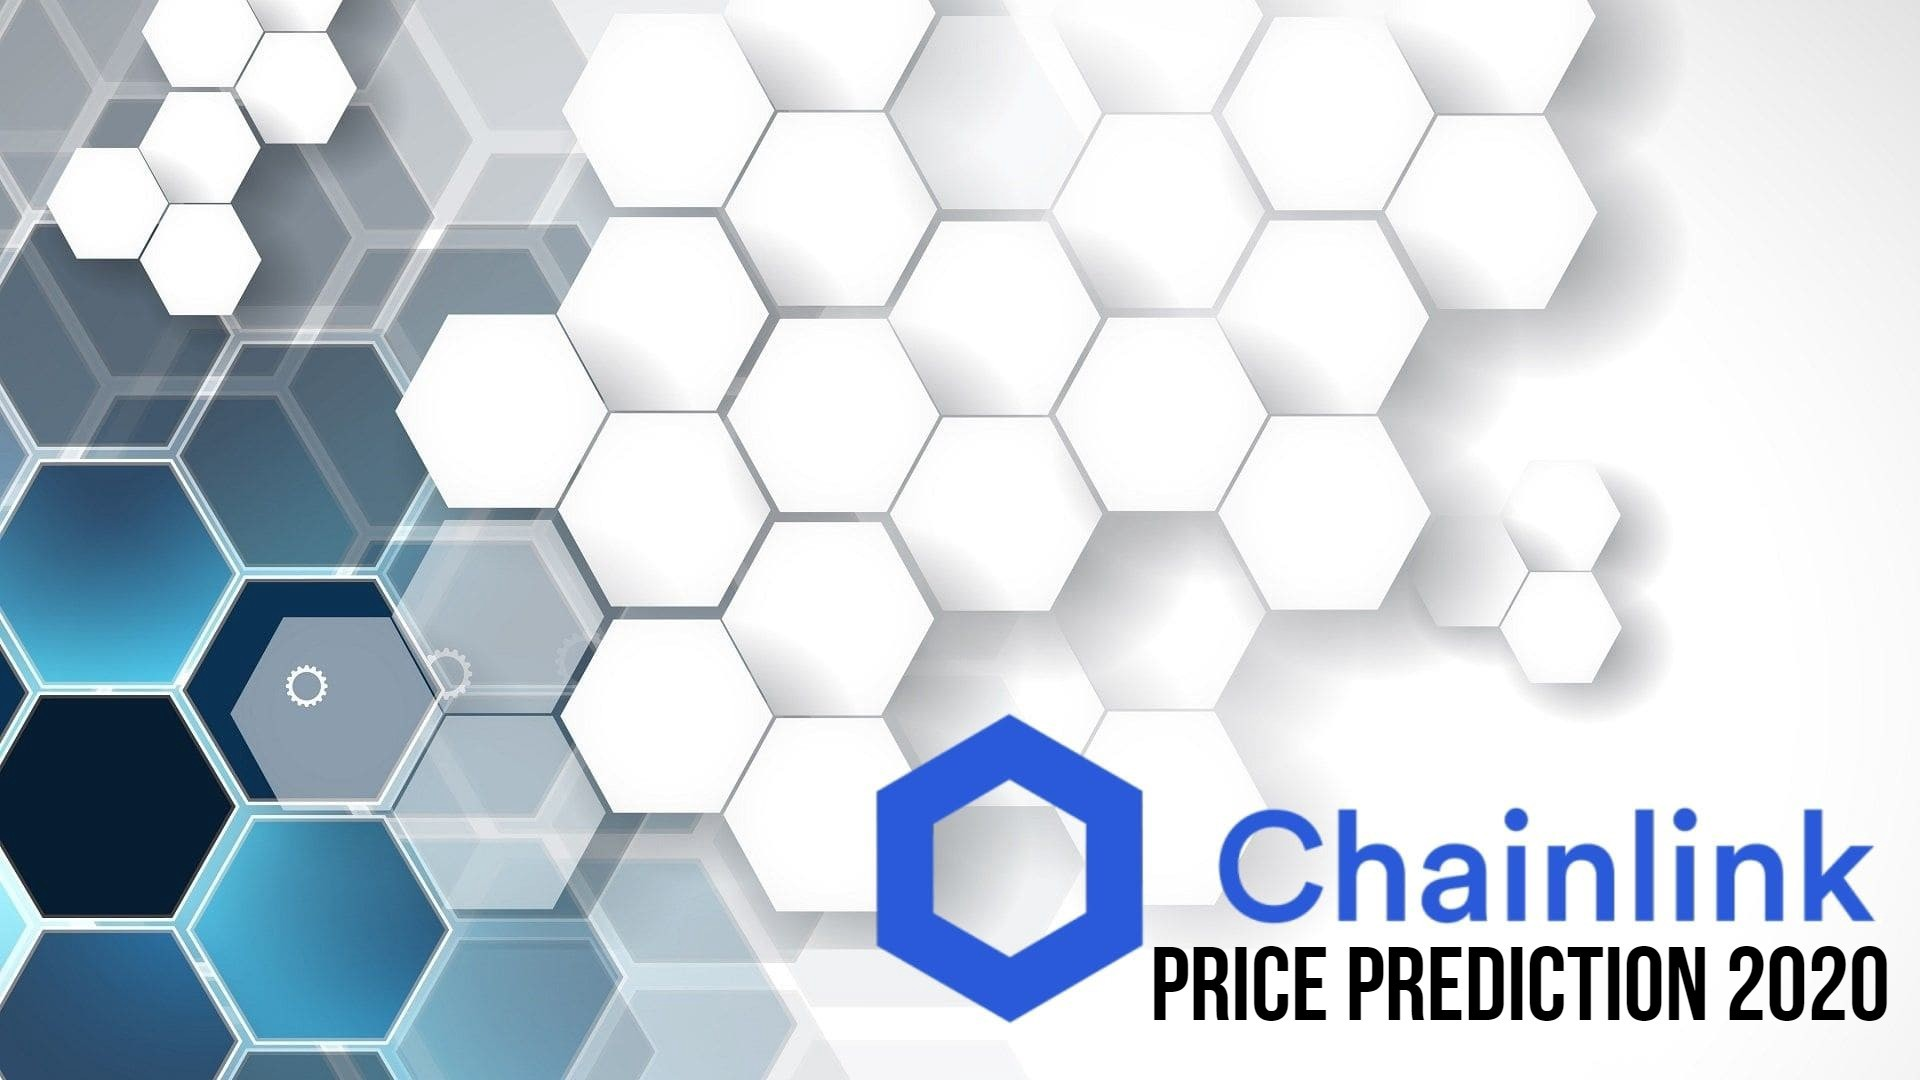 Chainlink price prediction 2020